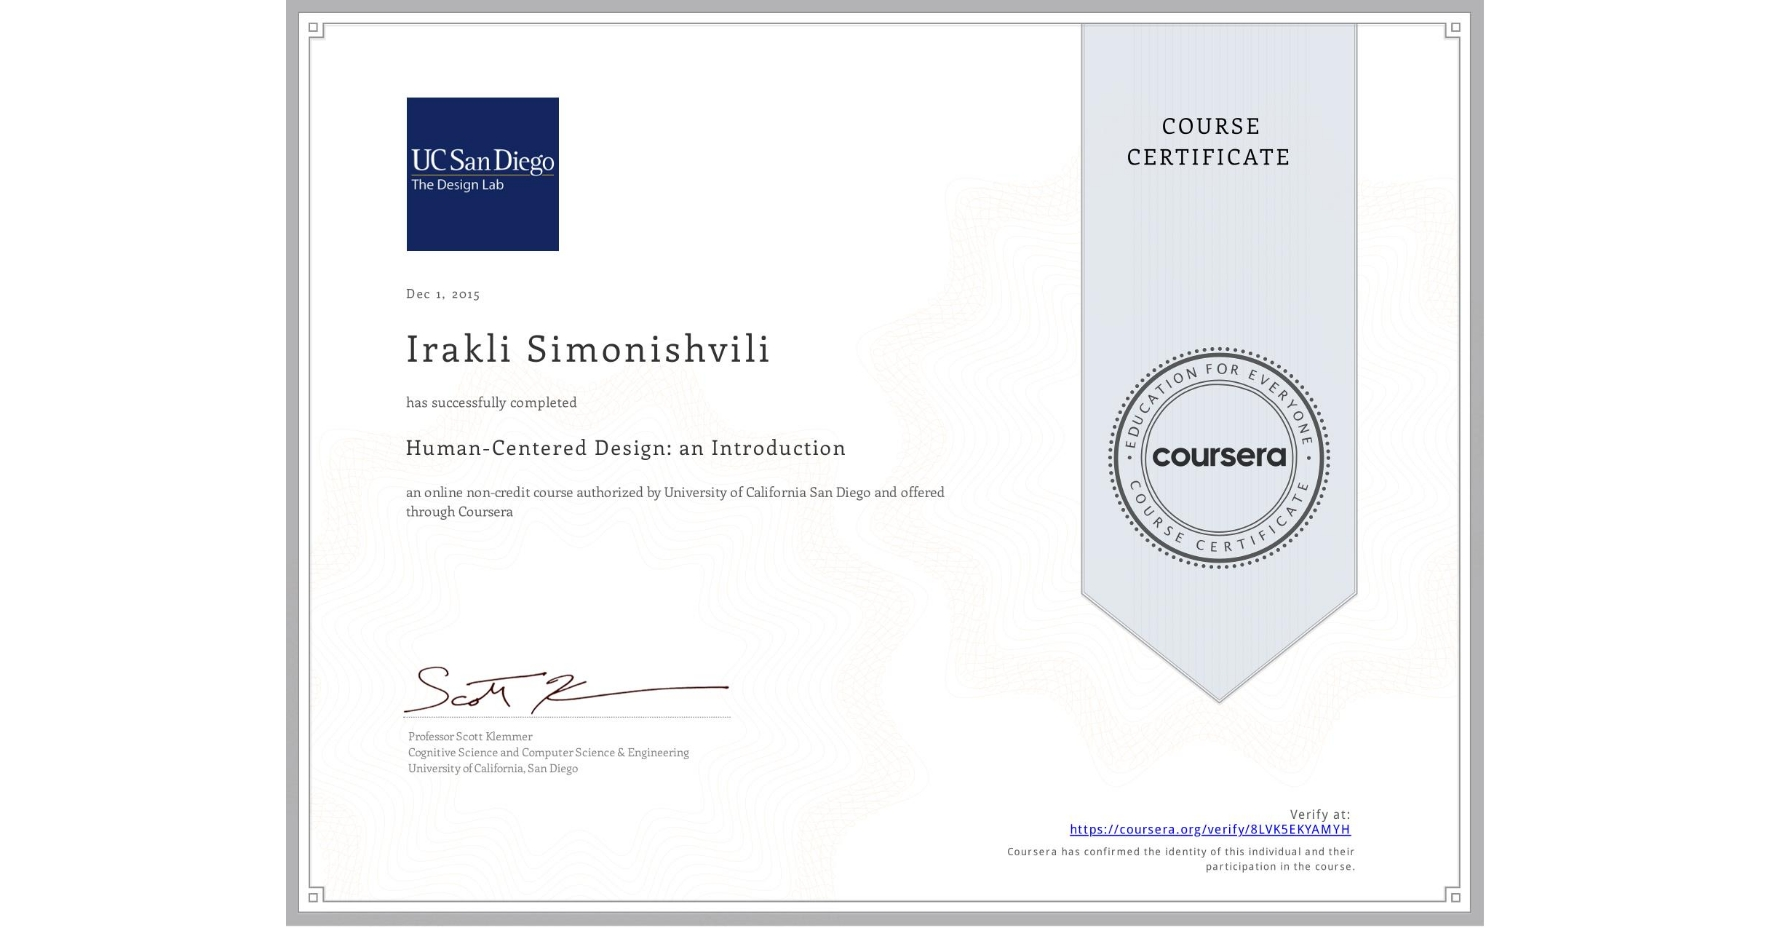 View certificate for Irakli Simonishvili, Human-Centered Design: an Introduction, an online non-credit course authorized by University of California San Diego and offered through Coursera